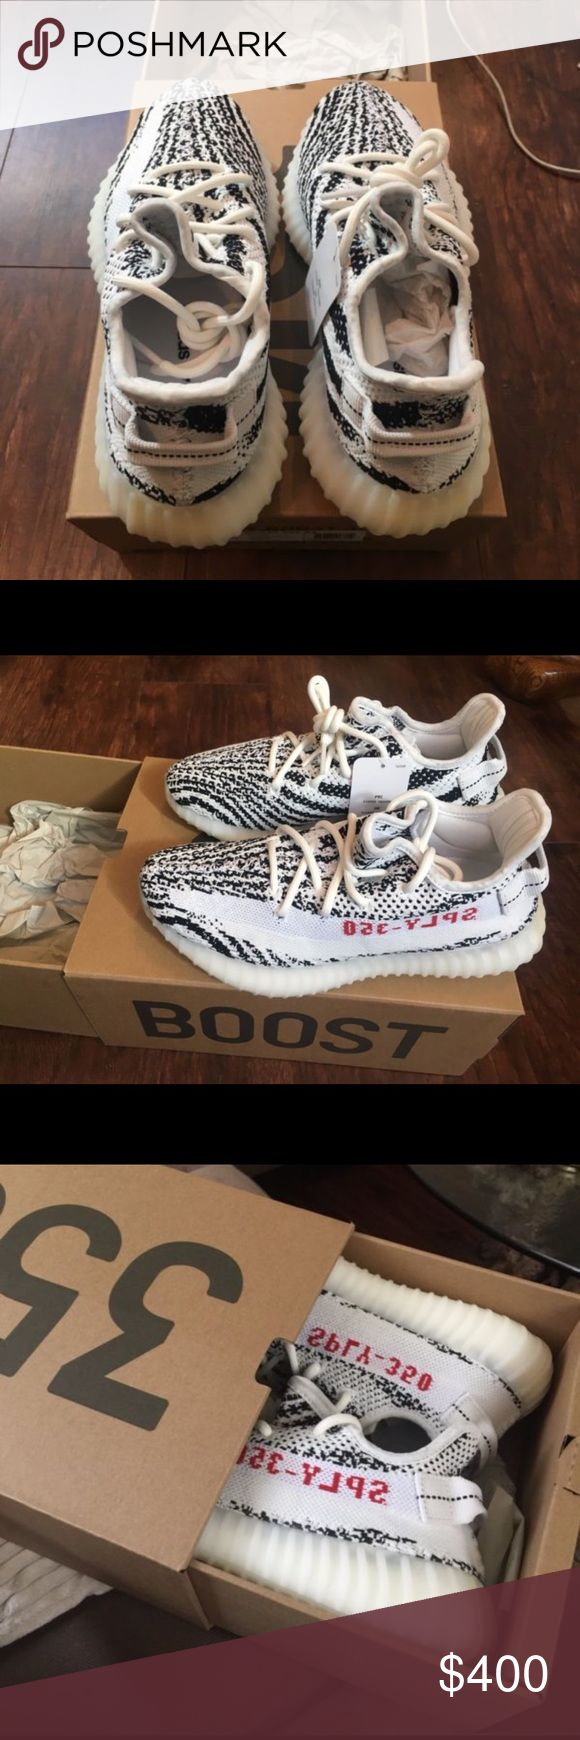 YEEZY BOOST 350v2 zebra 110%% Authentic purchased when came out  ,RECEIPT IN HAND cleaning out my closet instead of collecting dust would love to sell for the right price PLEASE ALL SERIOUS BUYERS CONTACT ME AT (248) 621-2849 Yeezy Shoes Sneakers